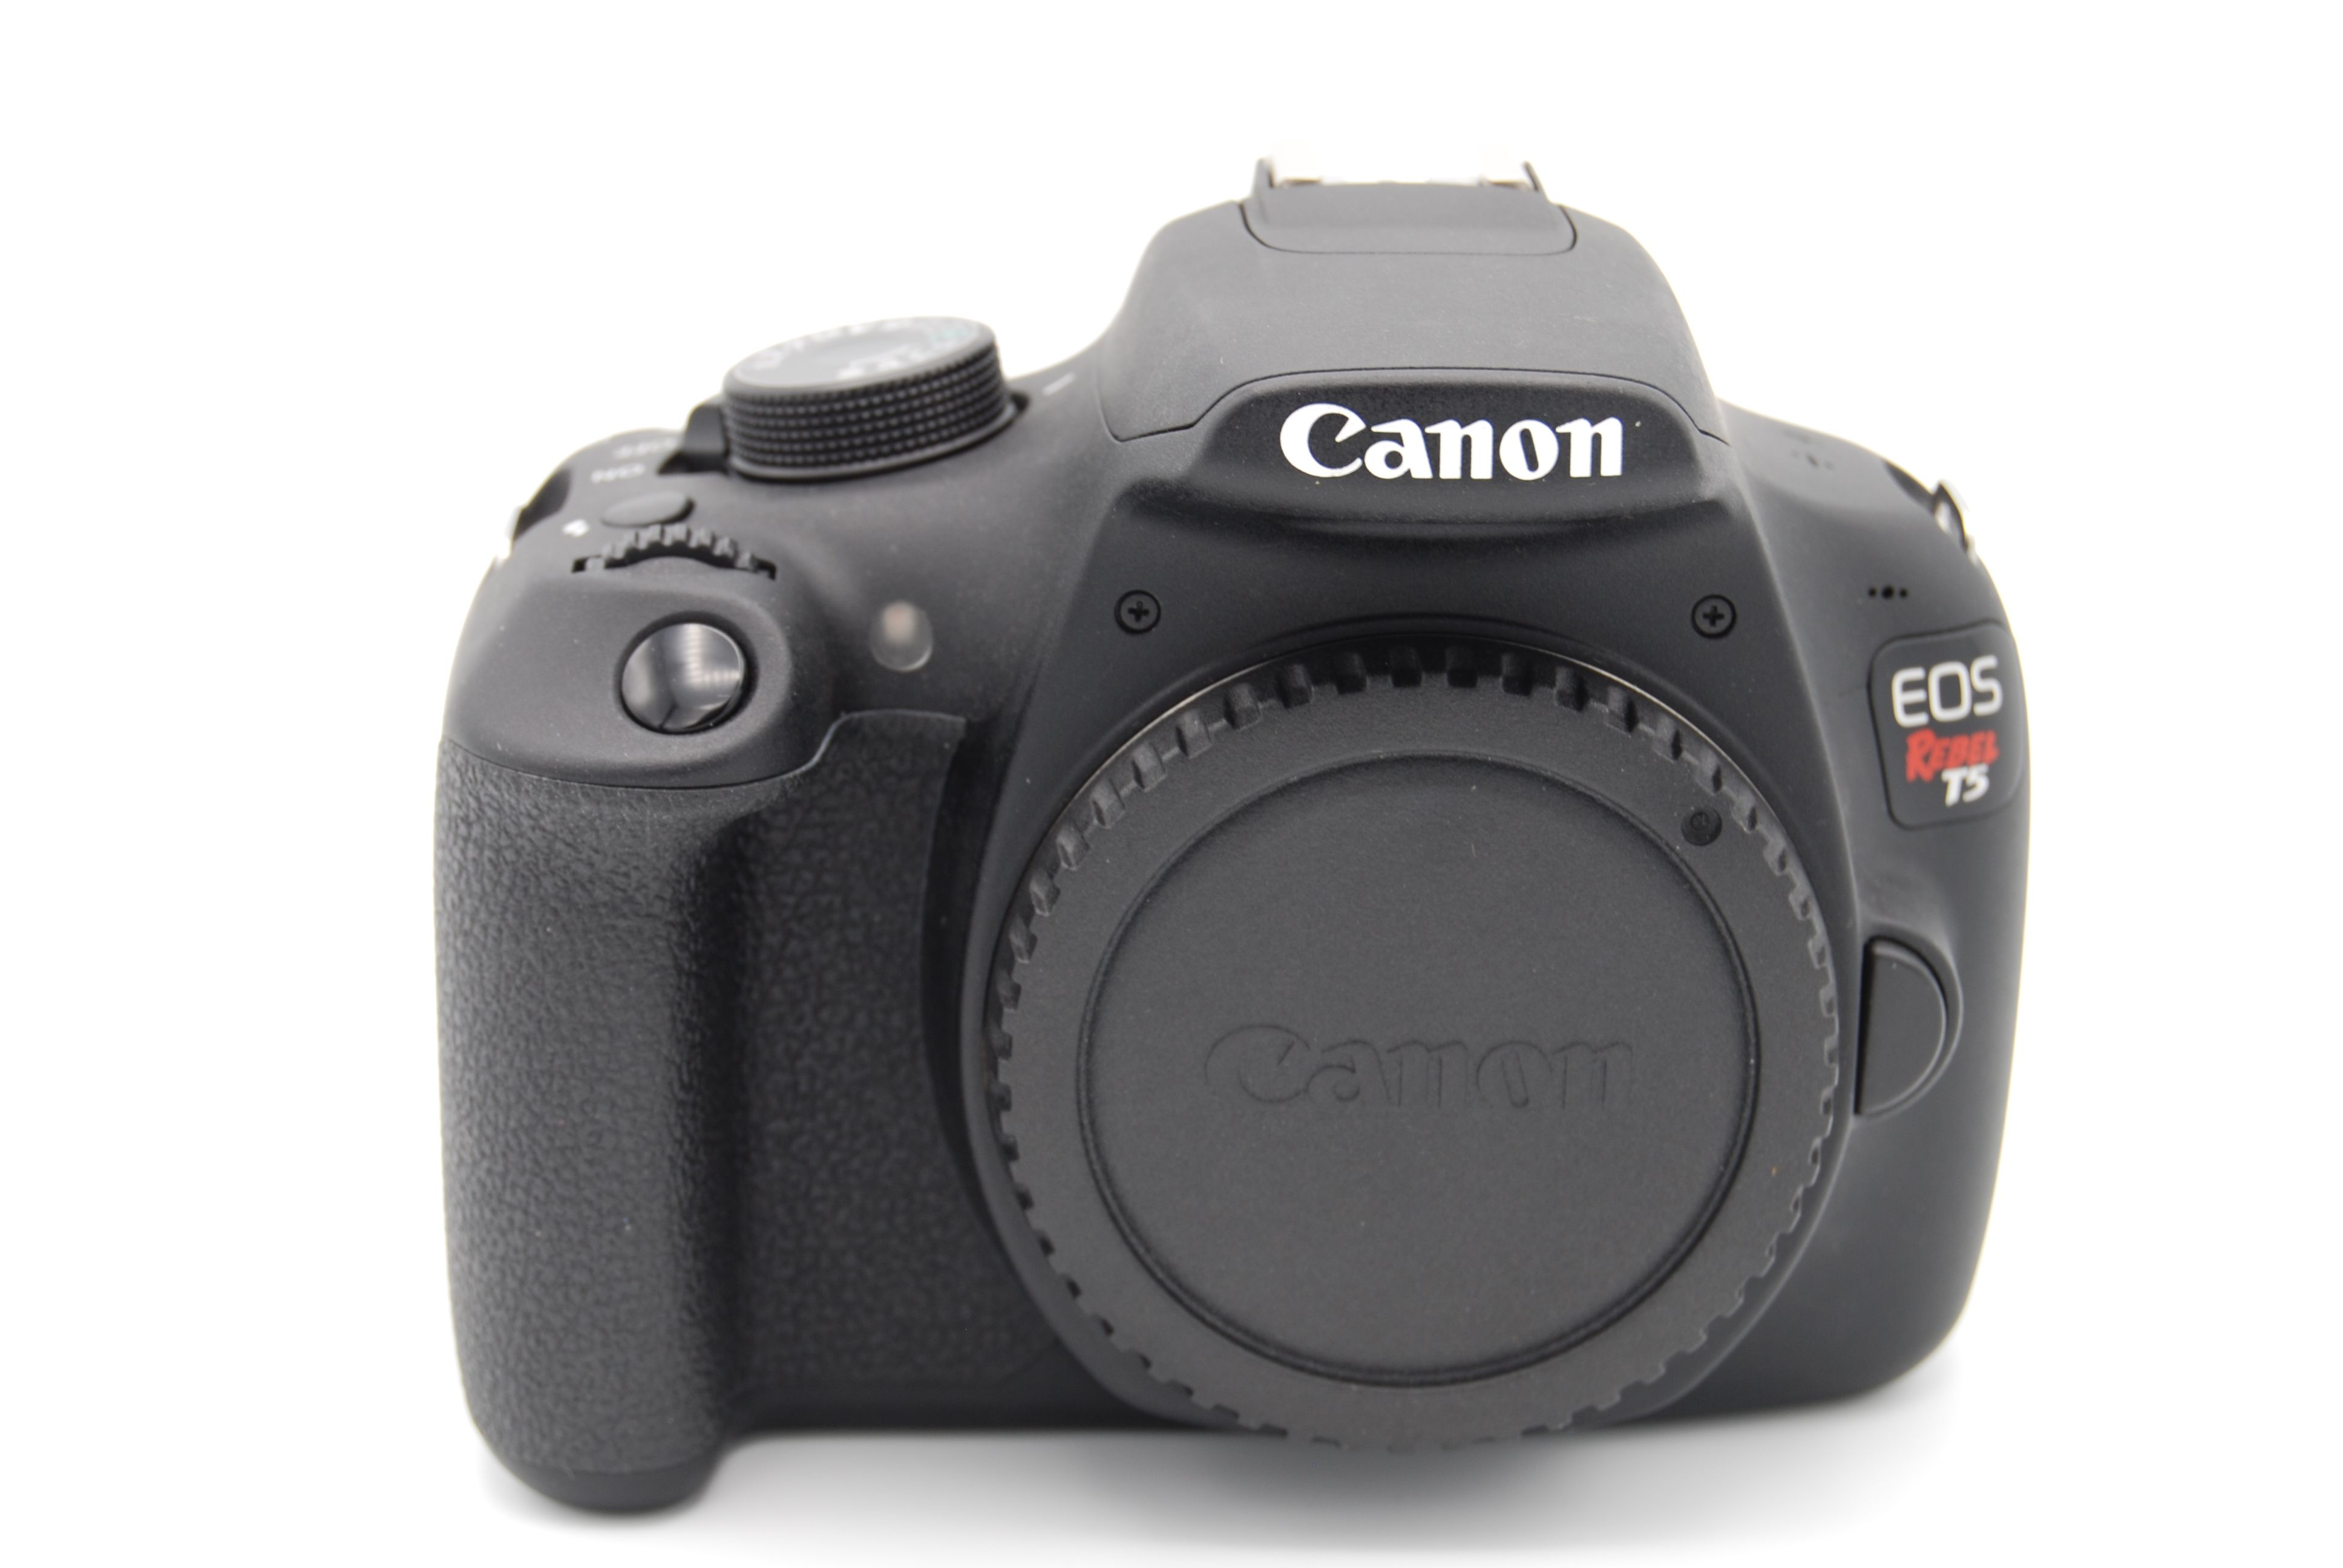 Details About Canon Eos 1200d Rebel T5 Kiss X70 18mp Digital Camera Shuuter Count 981